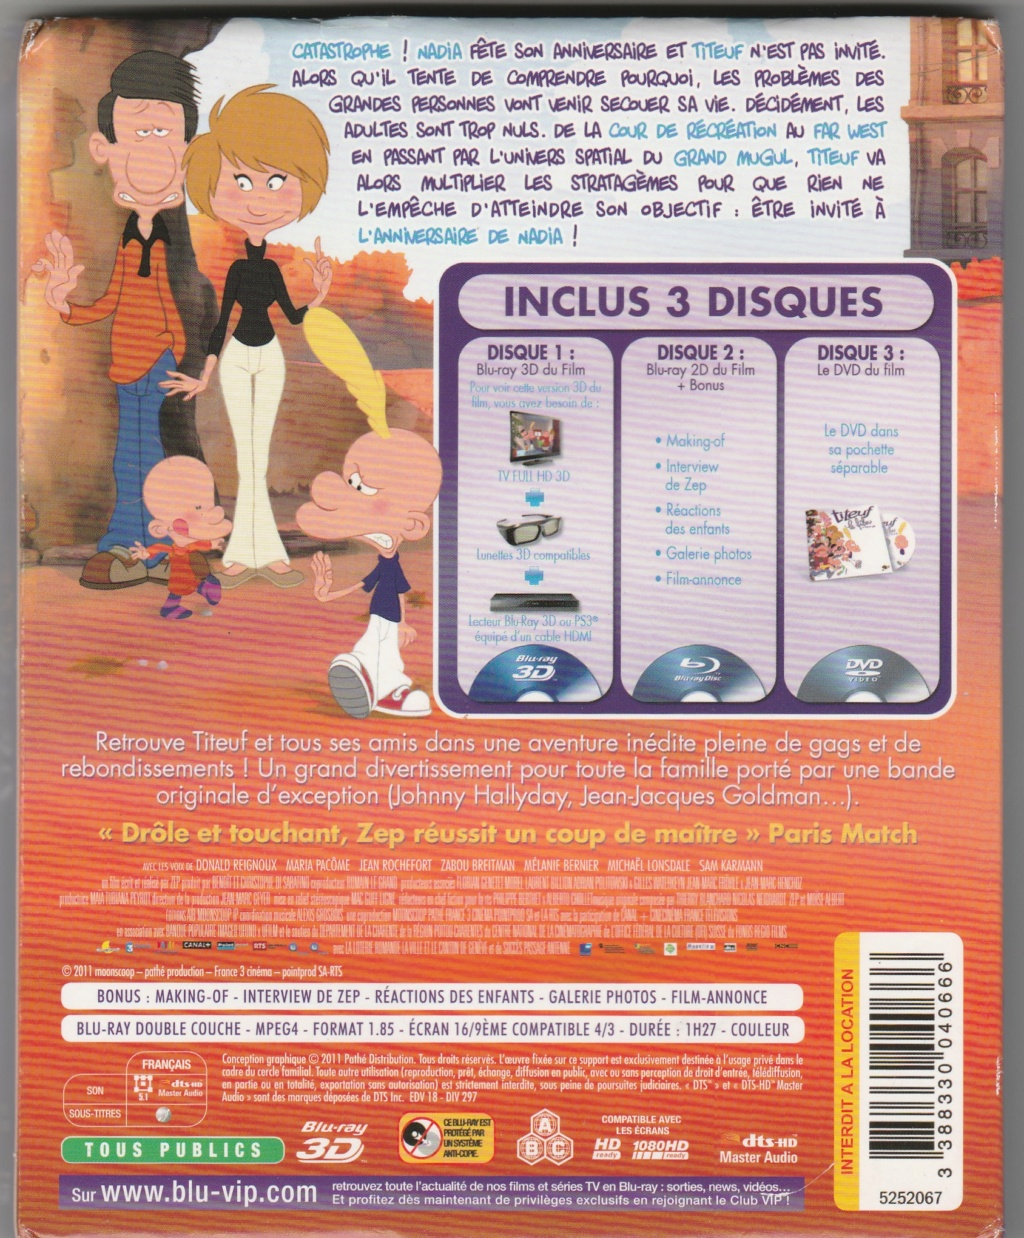 JAQUETTES BLU-RAY DISC ( CONCERTS, FILMS ) - Page 2 Img_2259